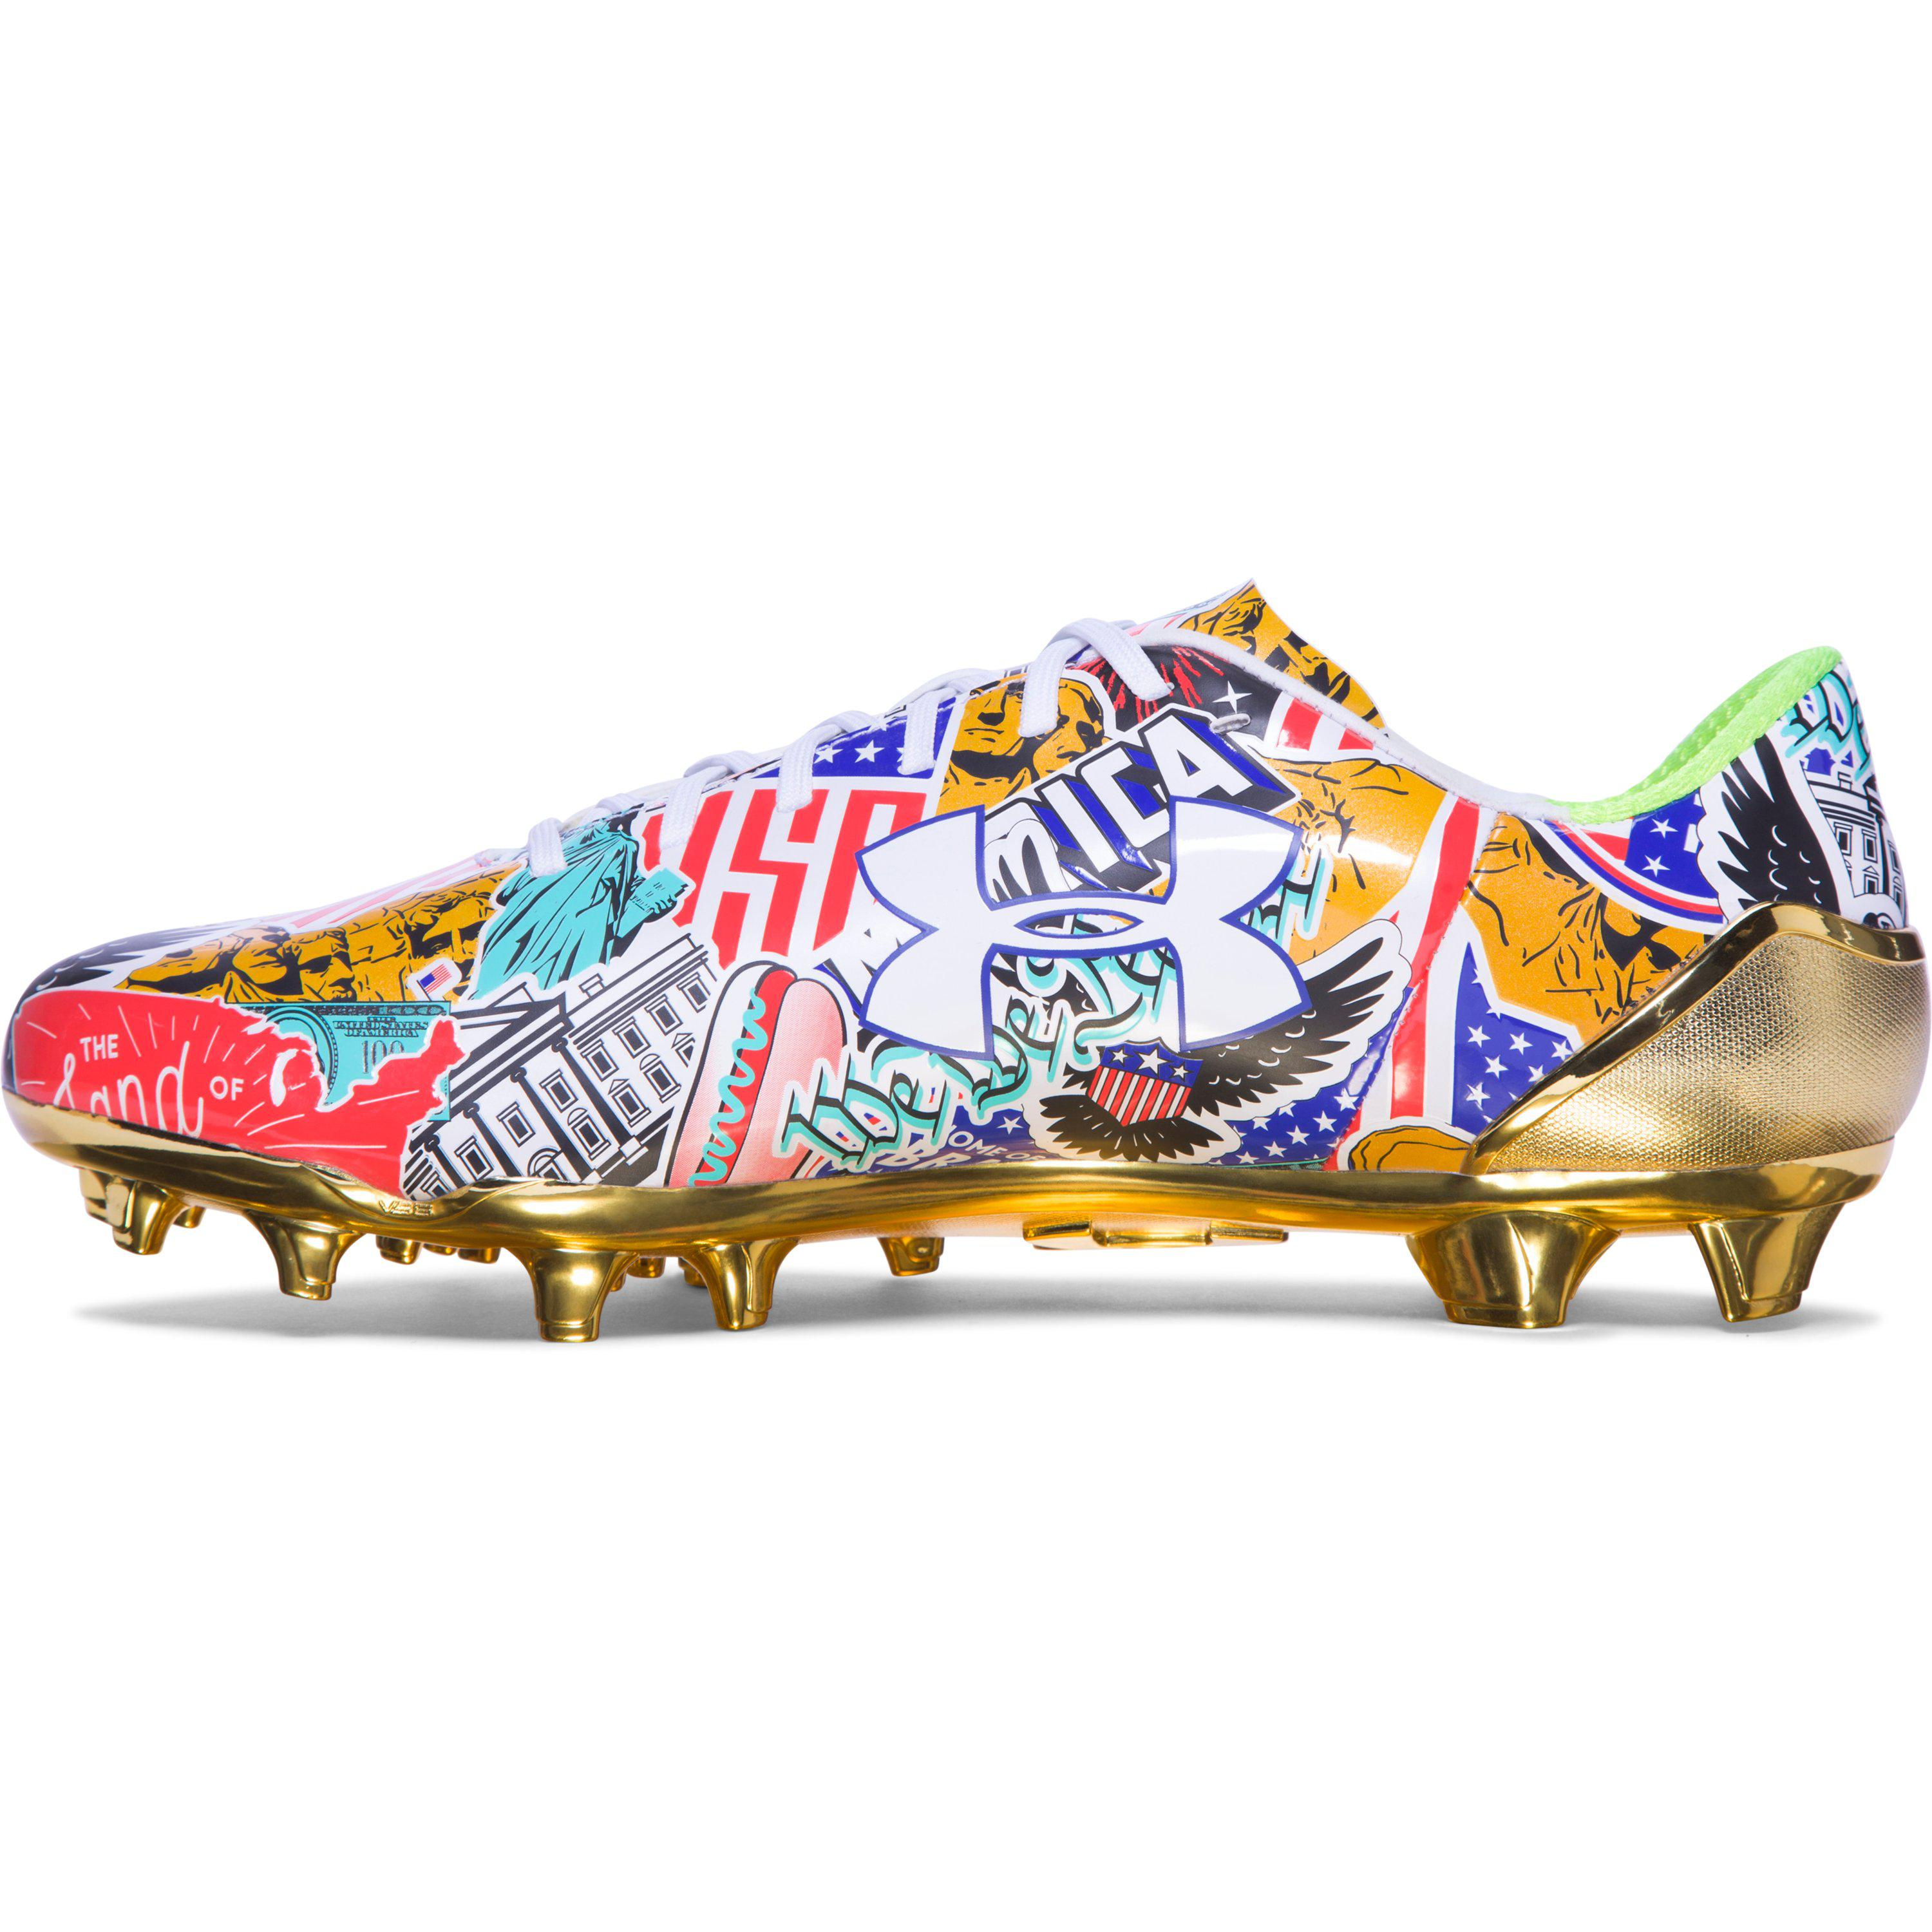 6e1698246b0 Under Armour Ua Spotlight Limited Edition Football Cleats Sneakers ...